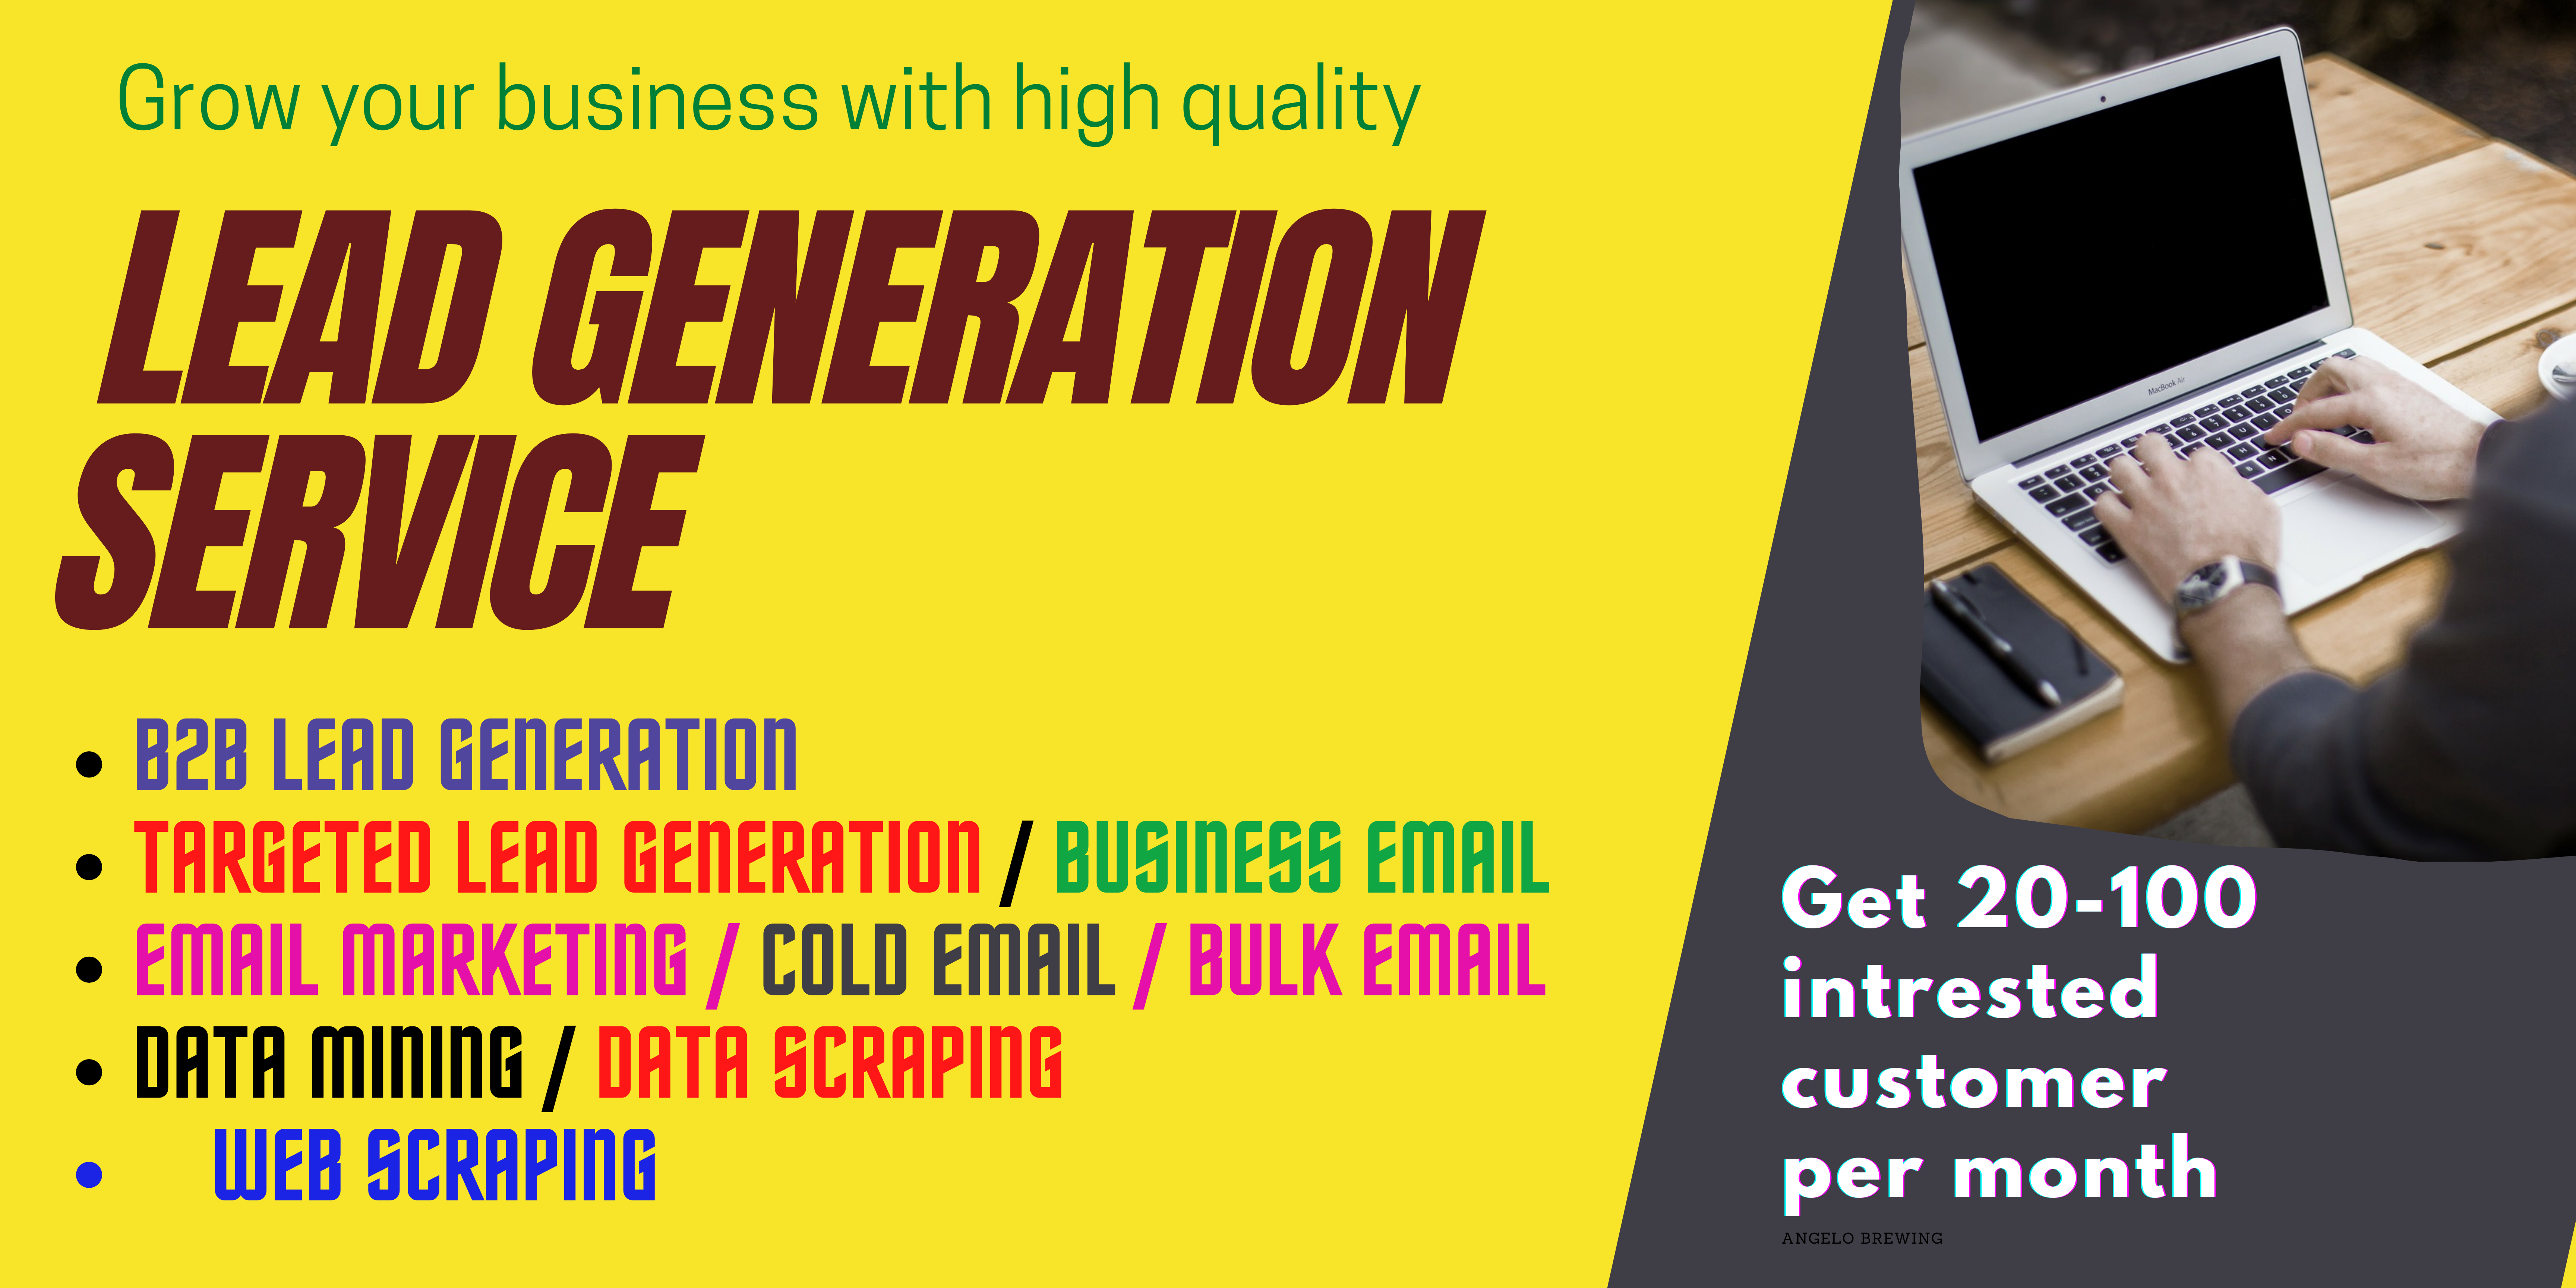 I will do b2b lead generation for cold calling and cold emailing